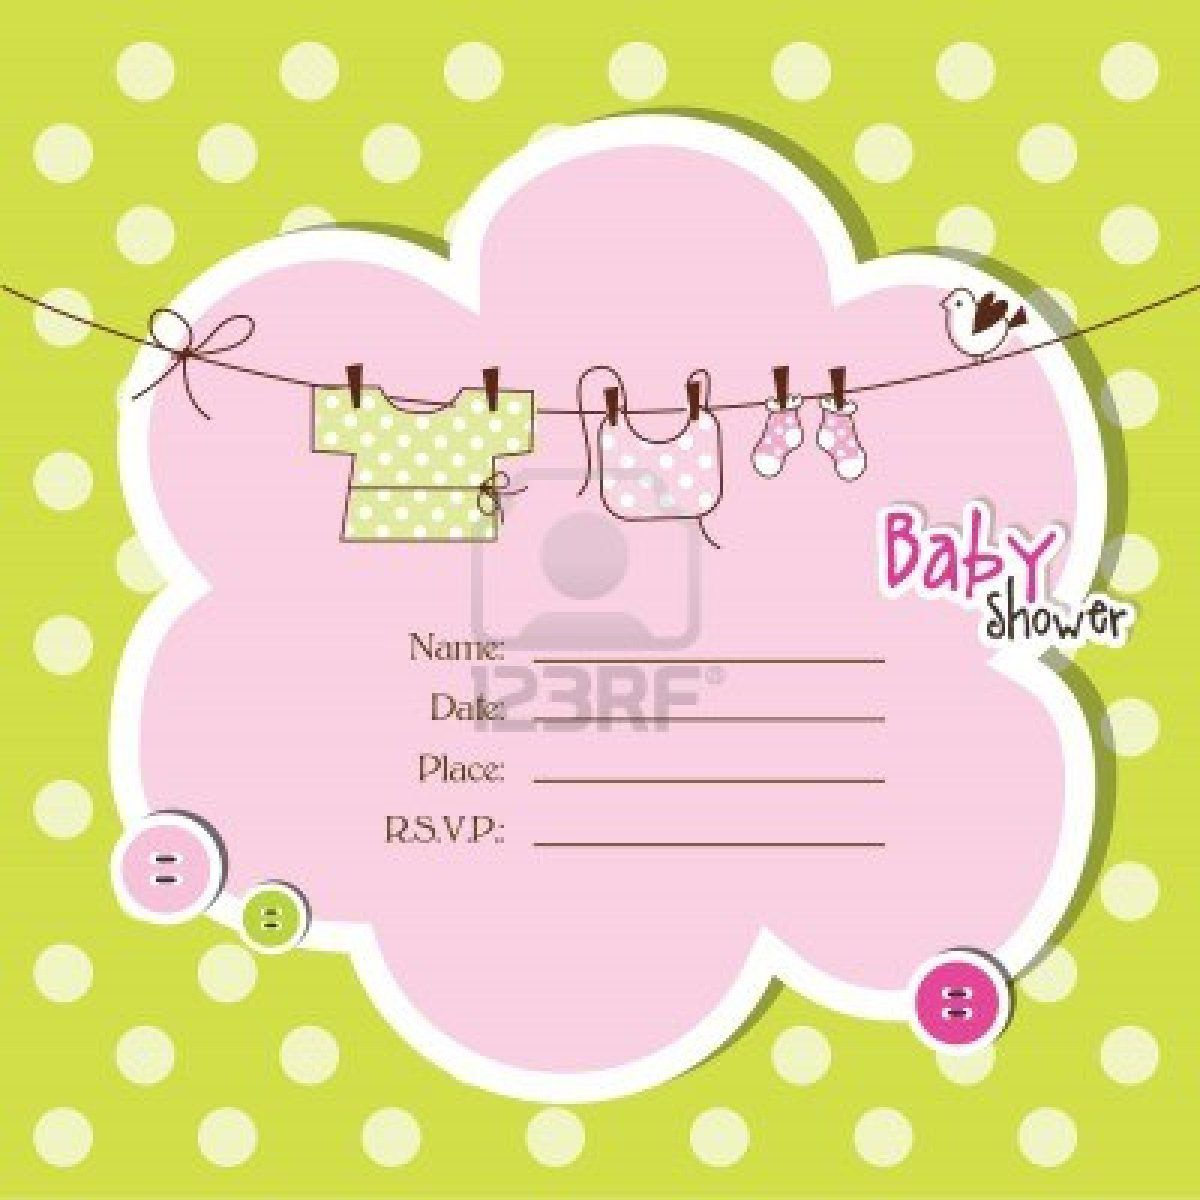 006 Beautiful Baby Shower Template Word High Def  Printable Search Free InvitationFull